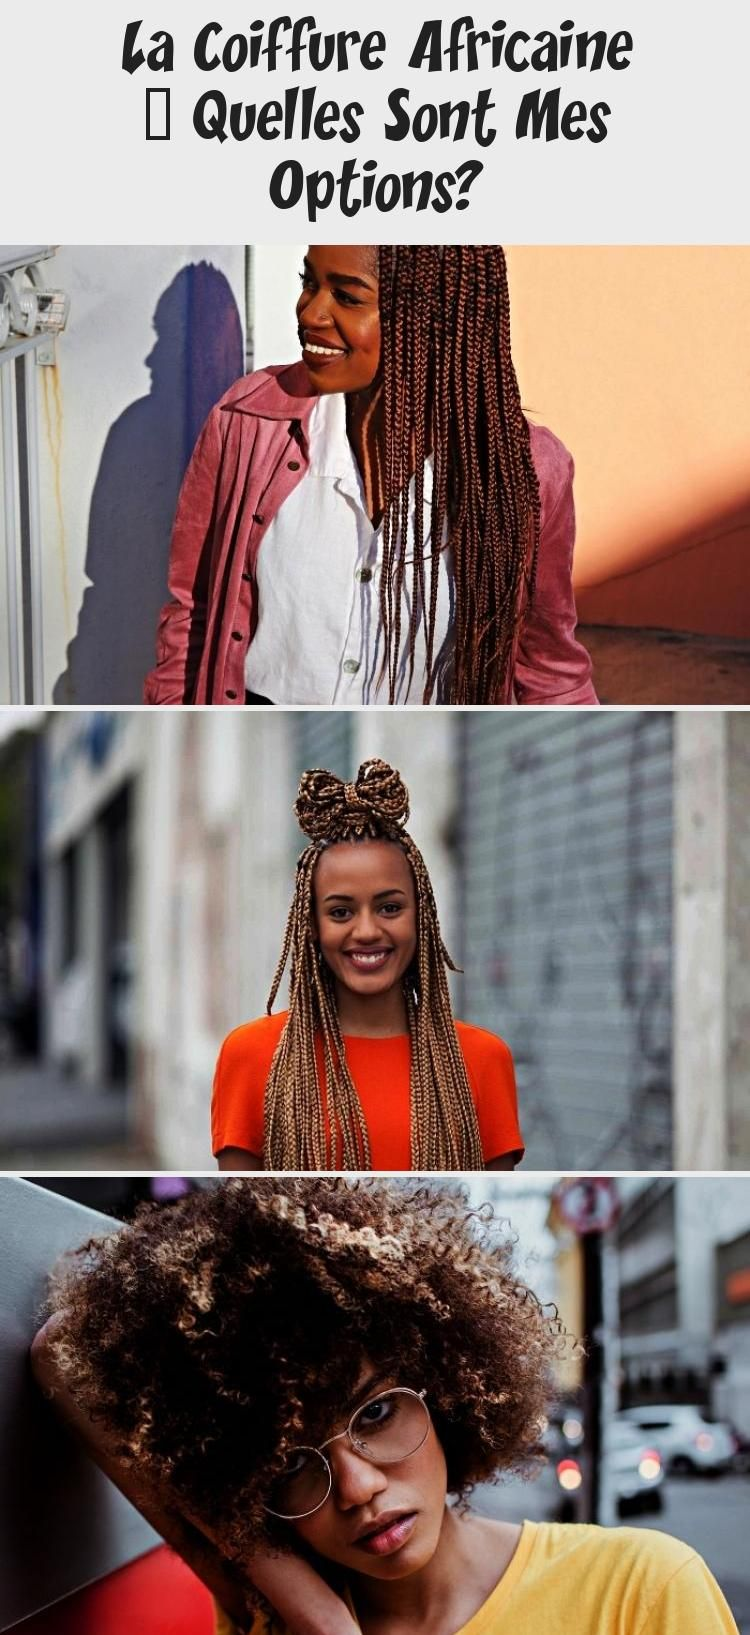 La Coiffure Africaine - Quelles Sont Mes Options in 2020 (With images) | Hair styles, Hair ...